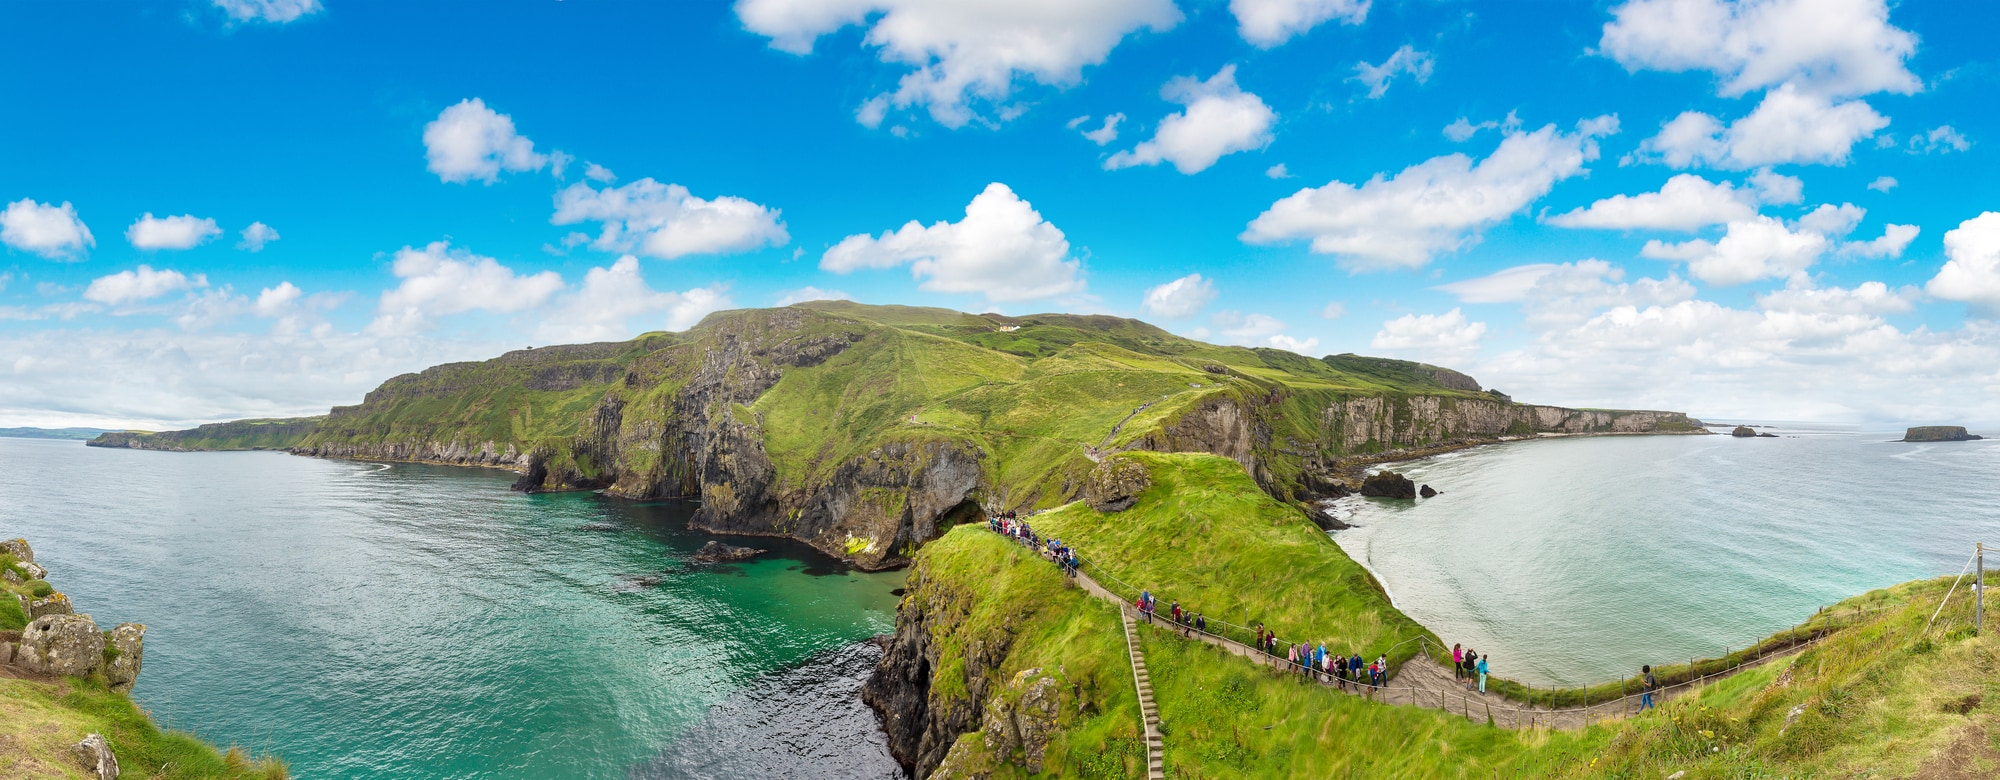 long shot of the Carrick-a-Rede rope bridge in N. Ireland